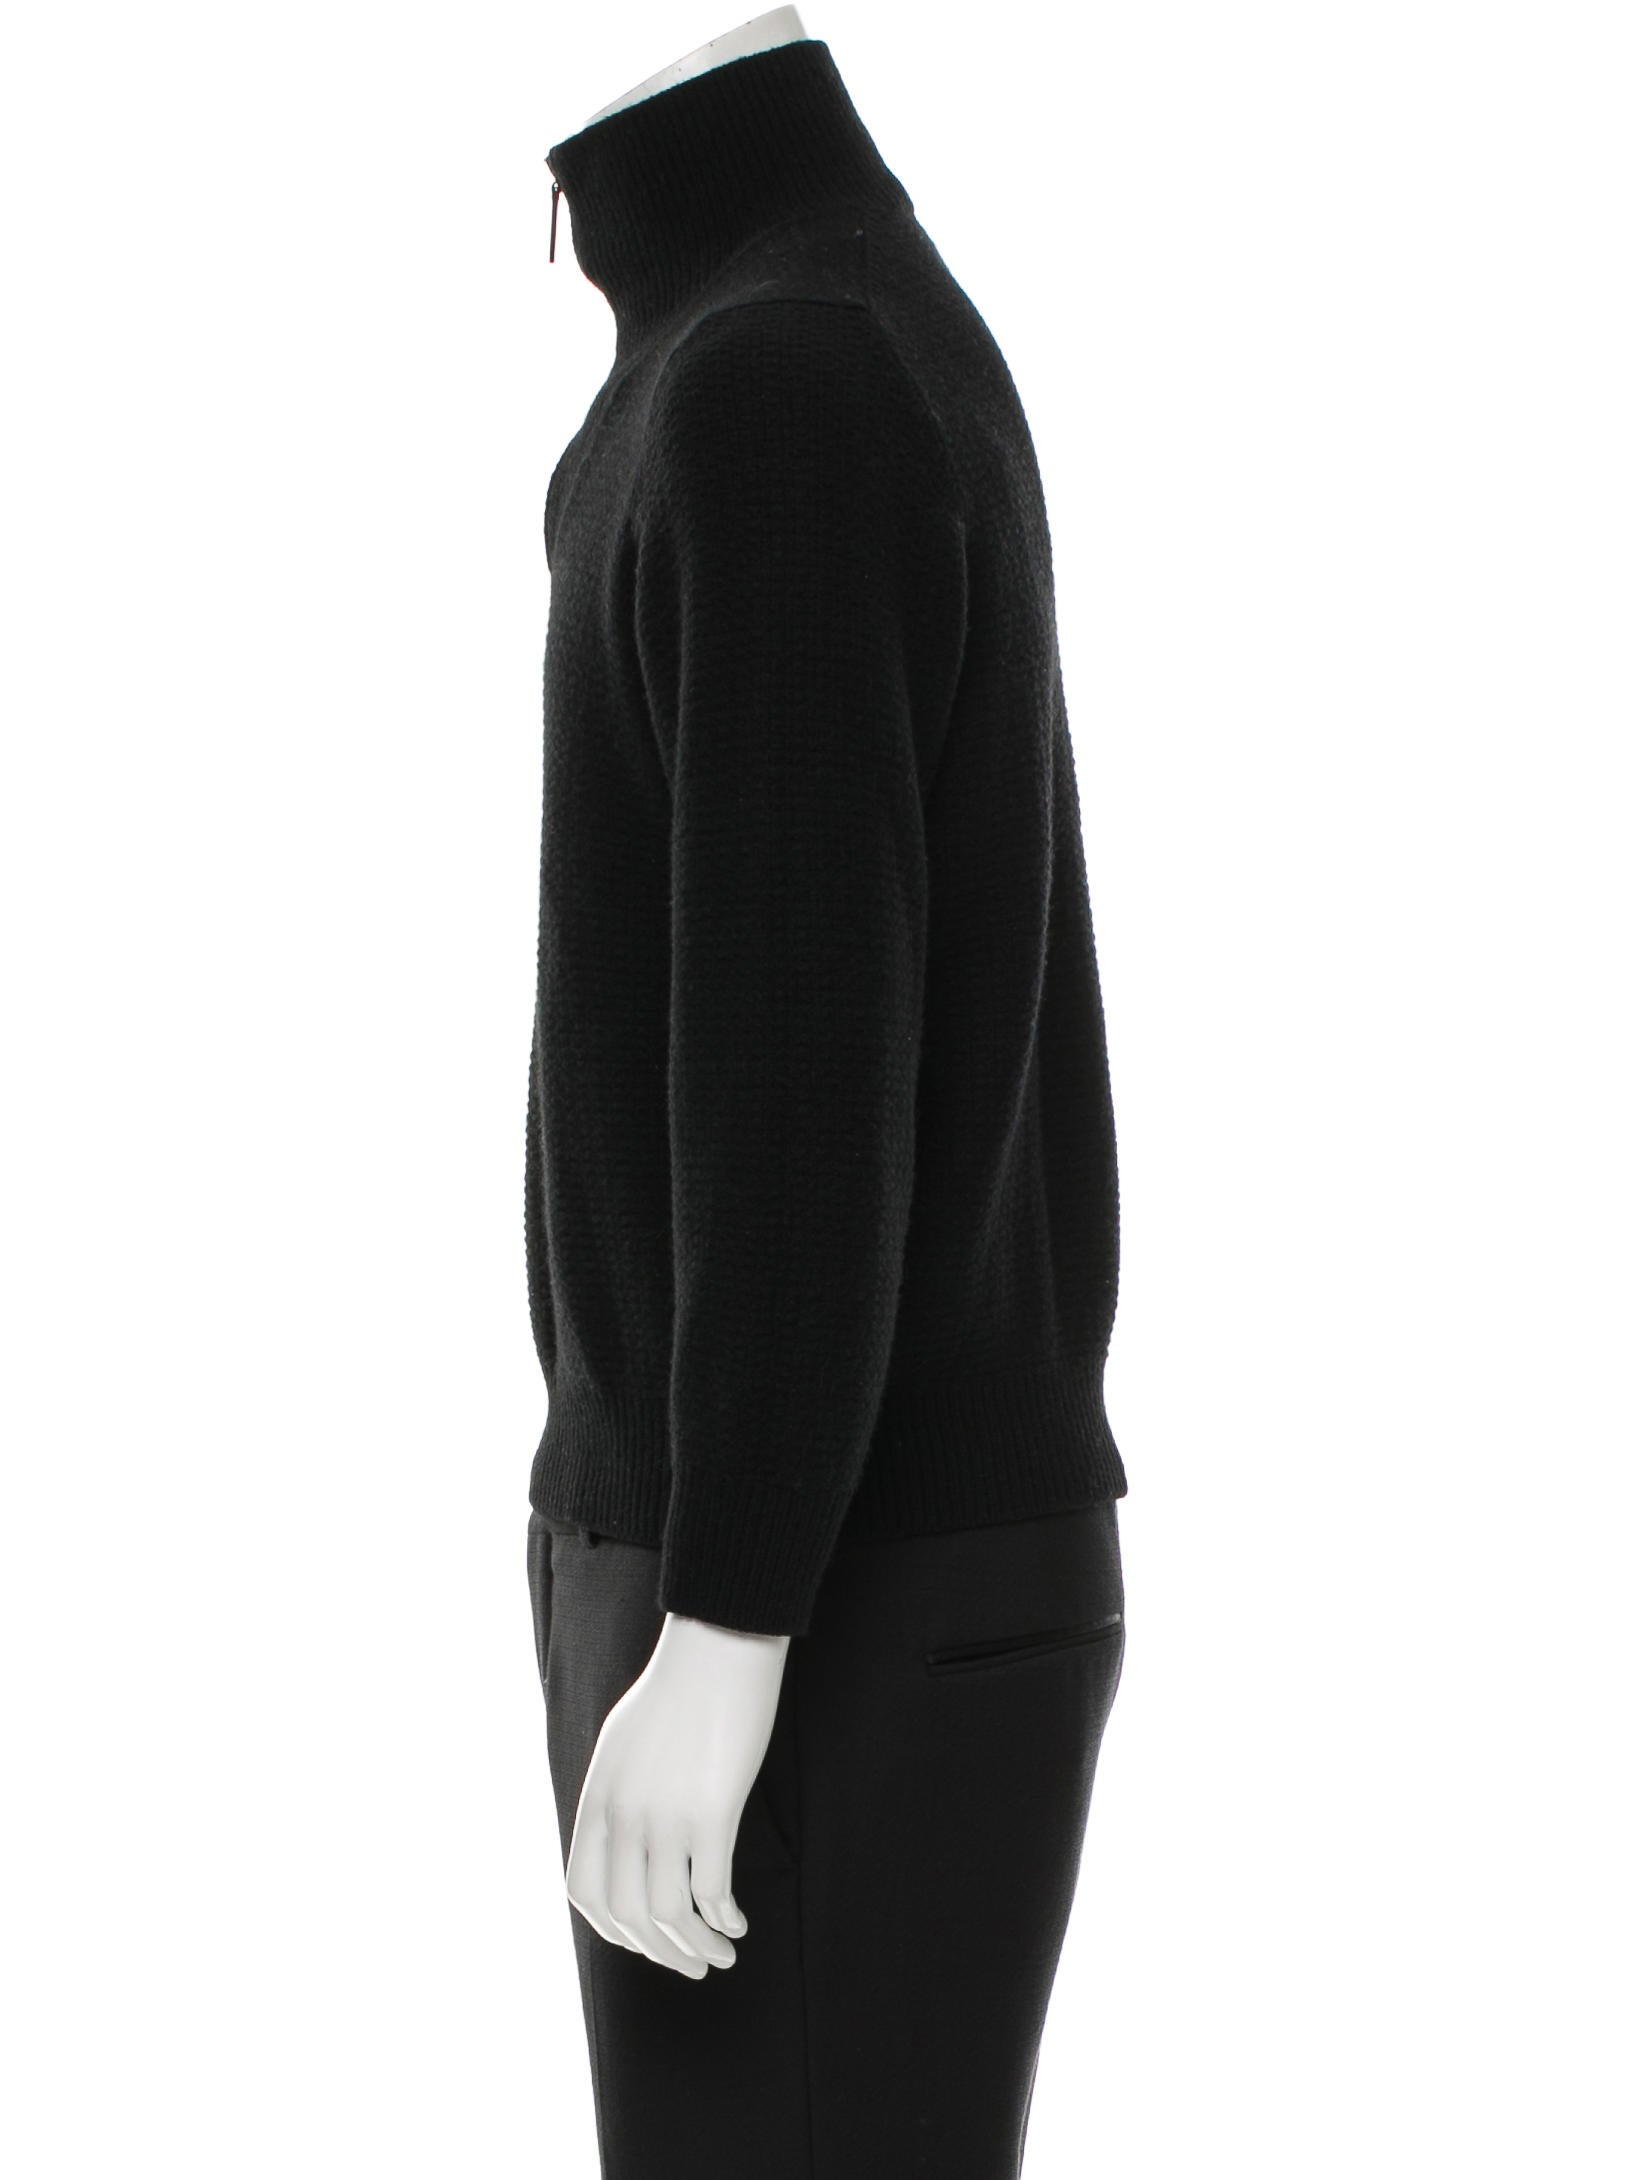 louis vuitton pullover half zip sweater clothing. Black Bedroom Furniture Sets. Home Design Ideas